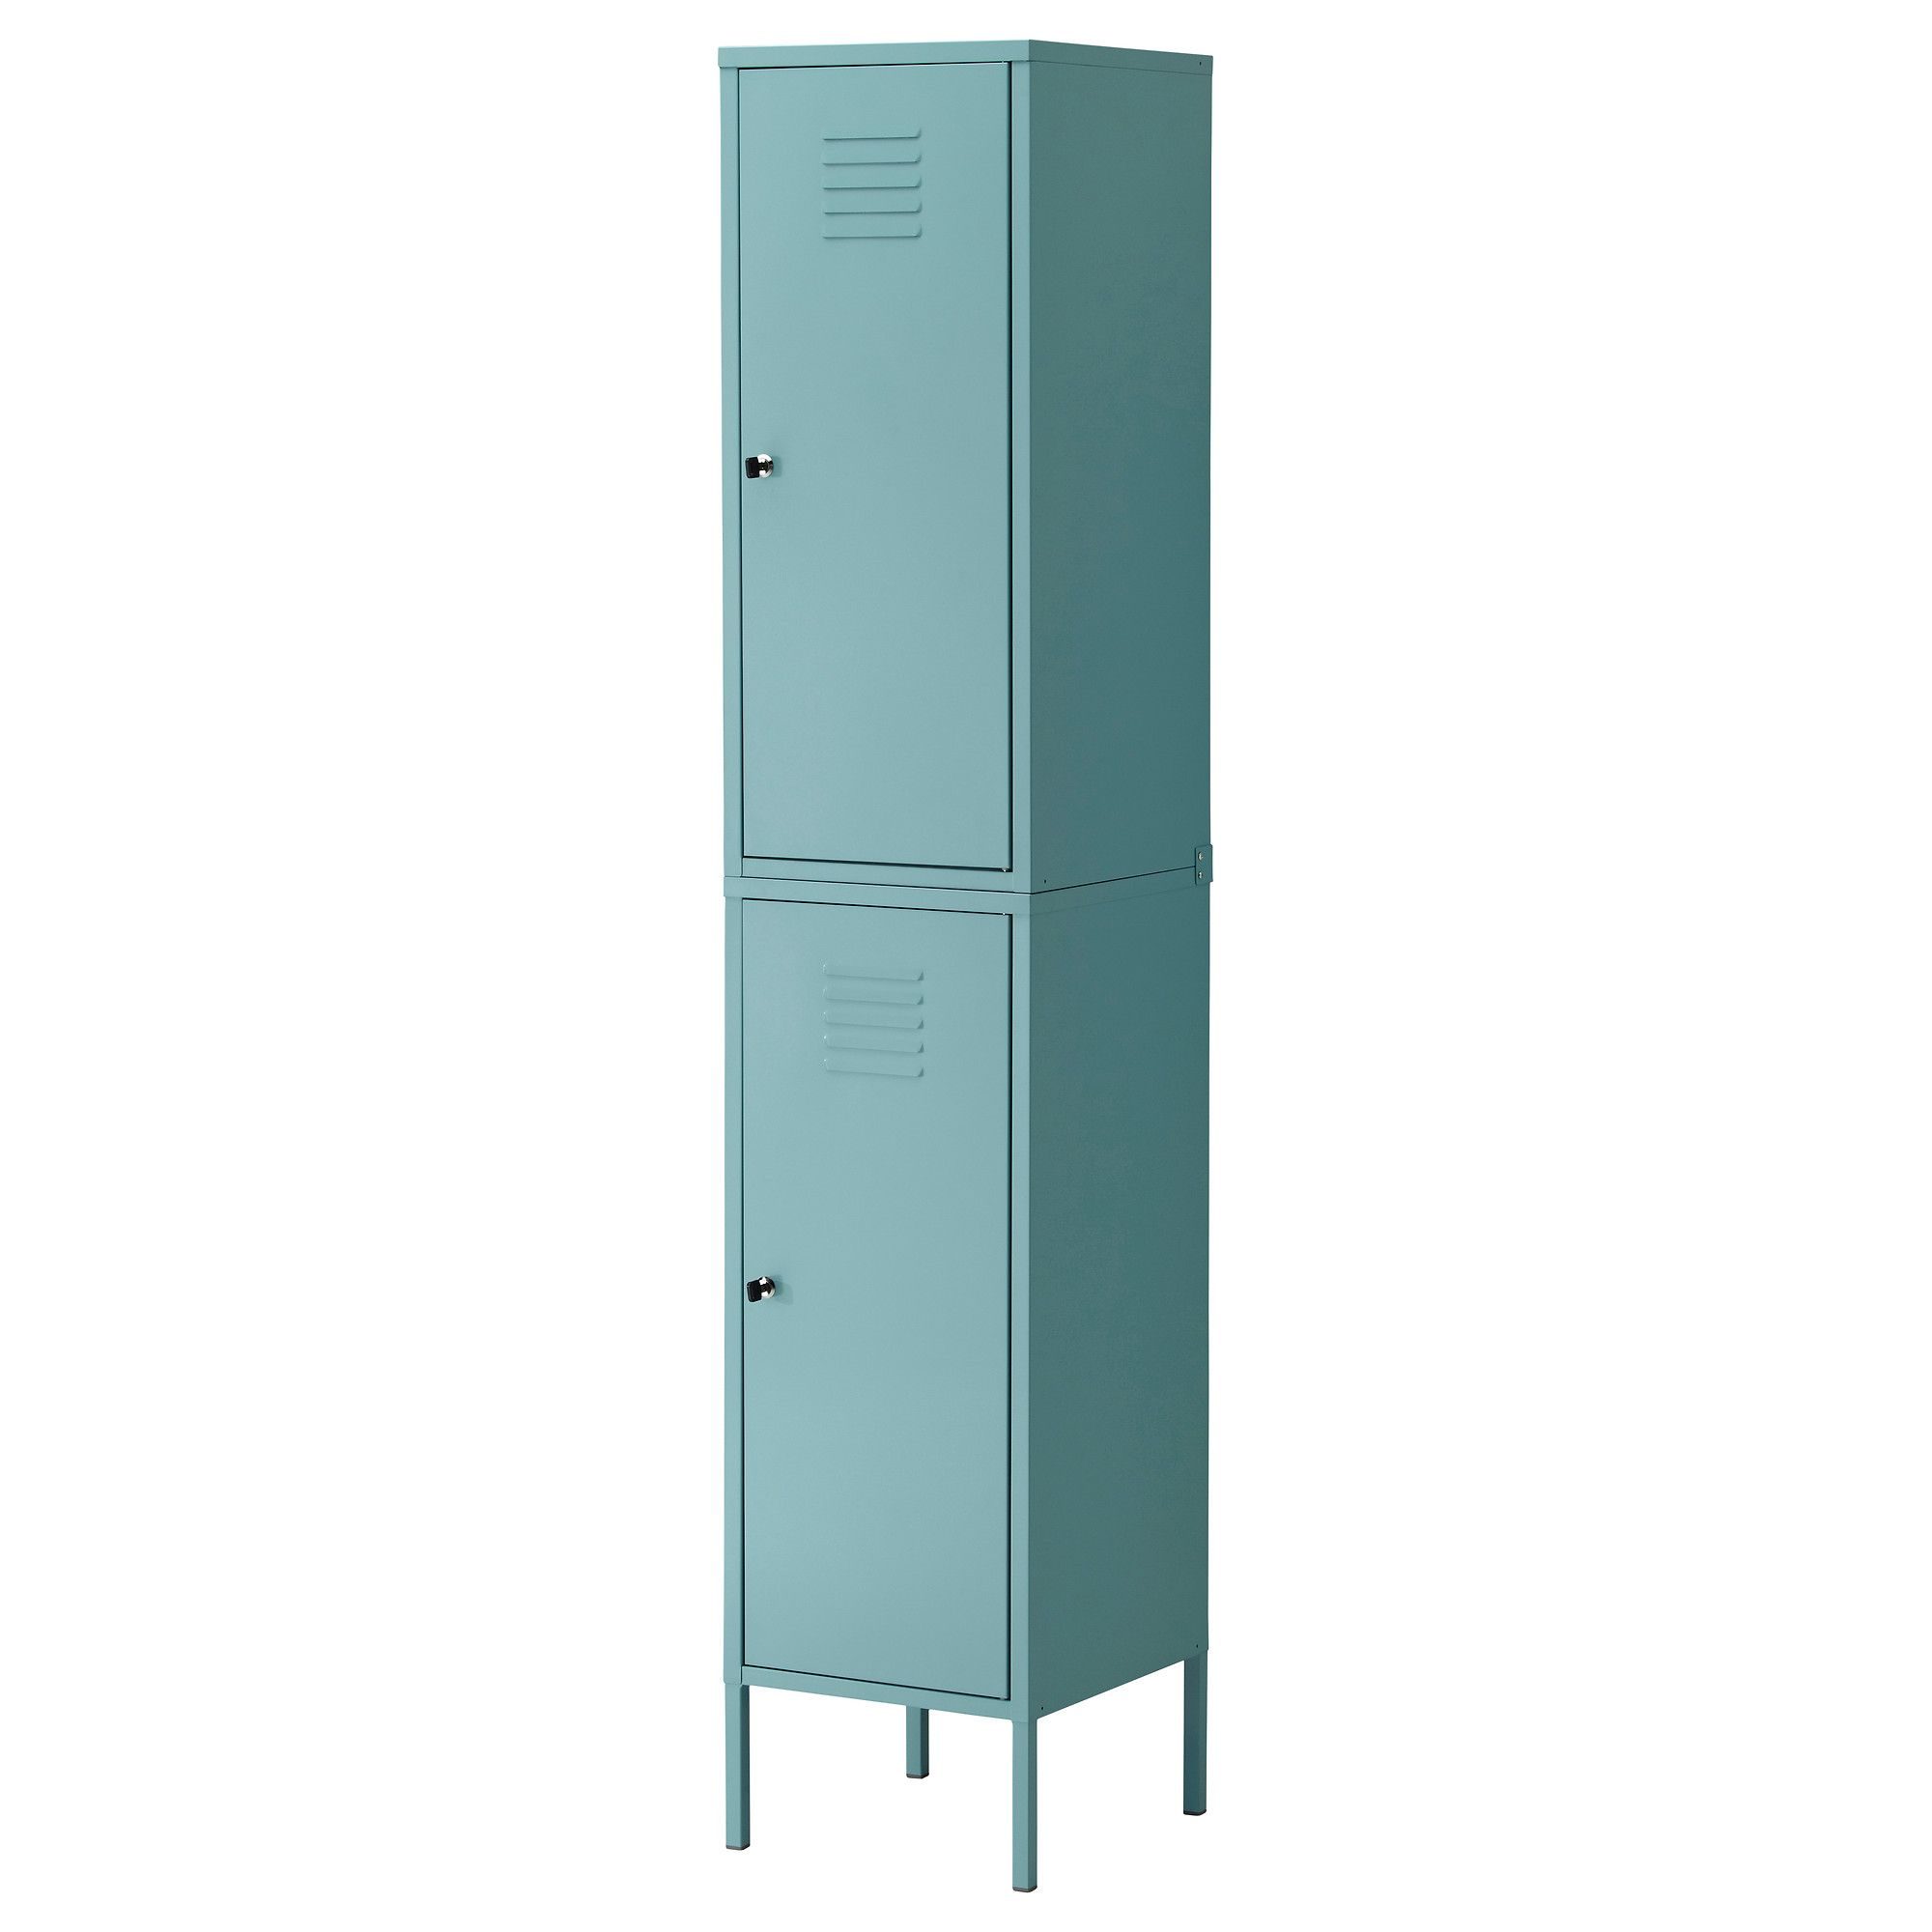 Ikea Schrank Klein Ikea Ps Cabinet Ikea 99 For Dining Room For Work Supplies And